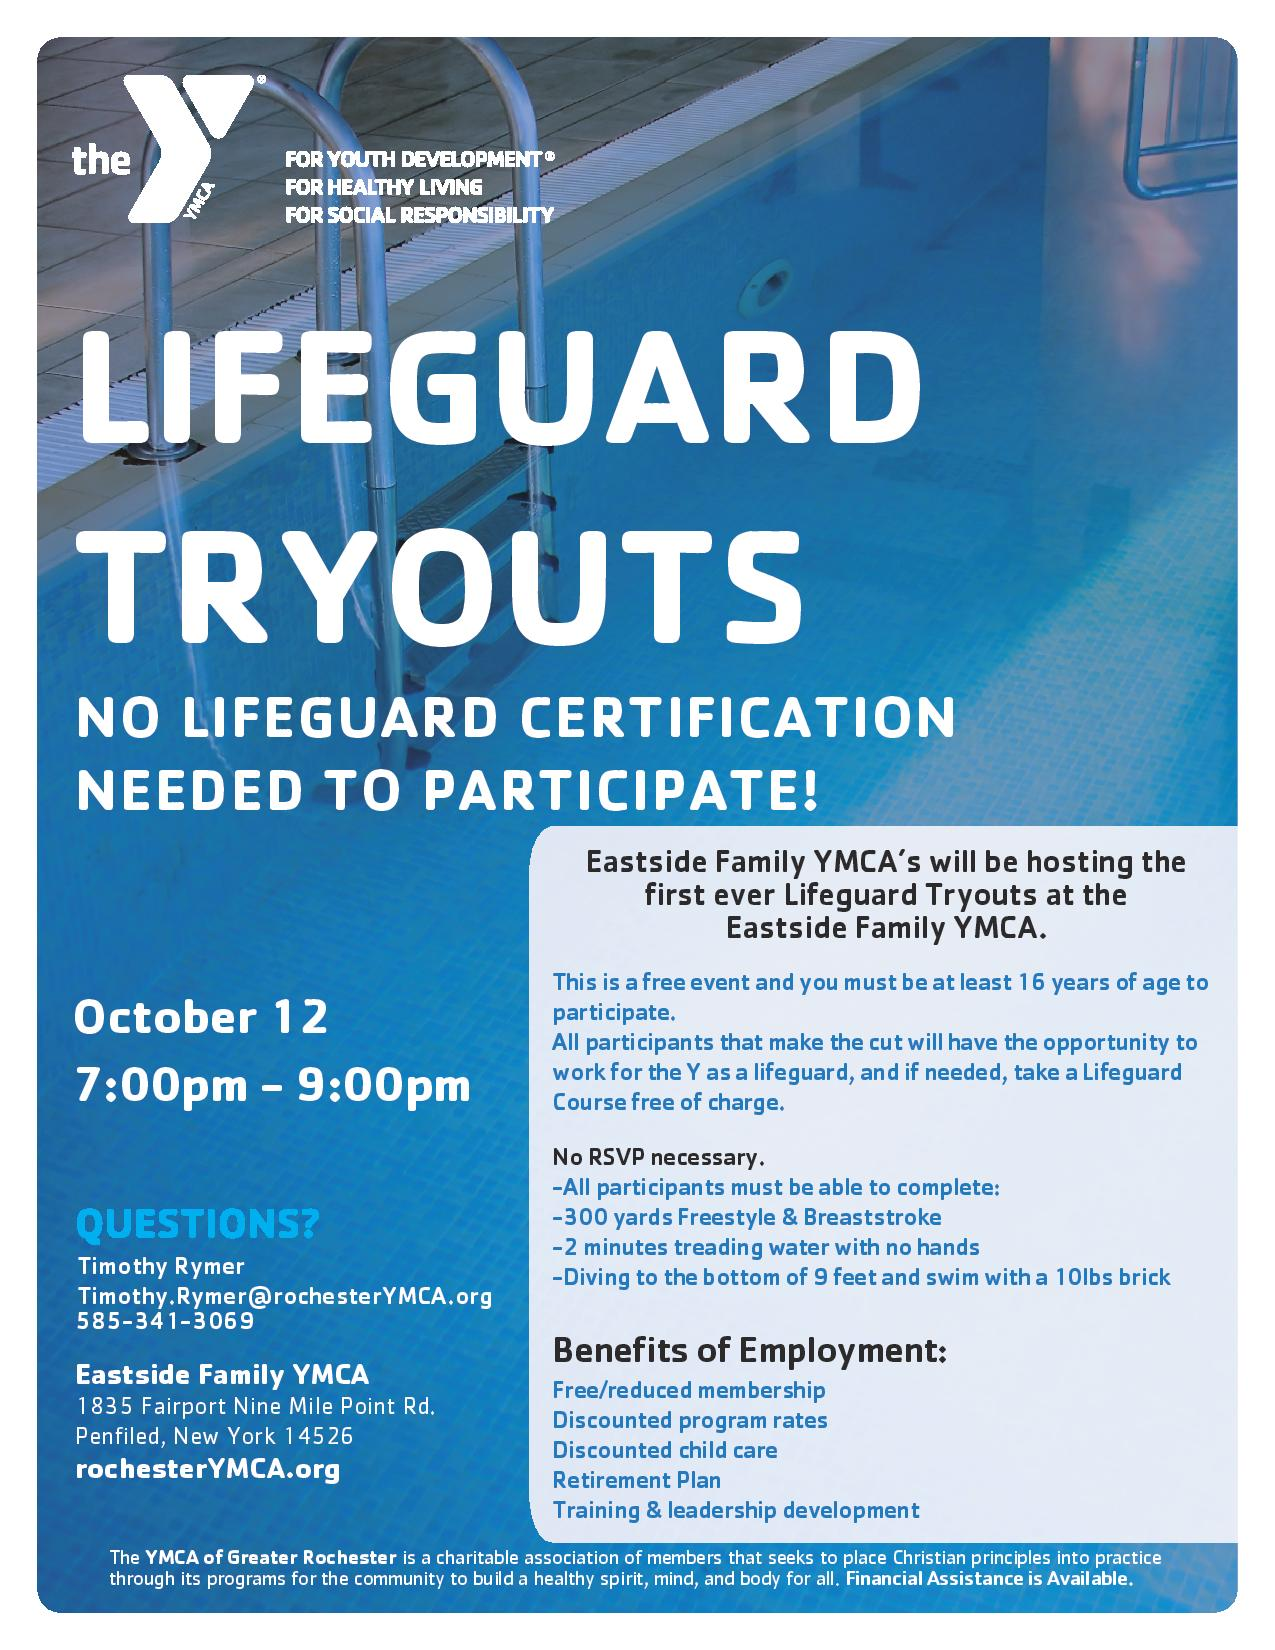 ymca lifeguard tryouts